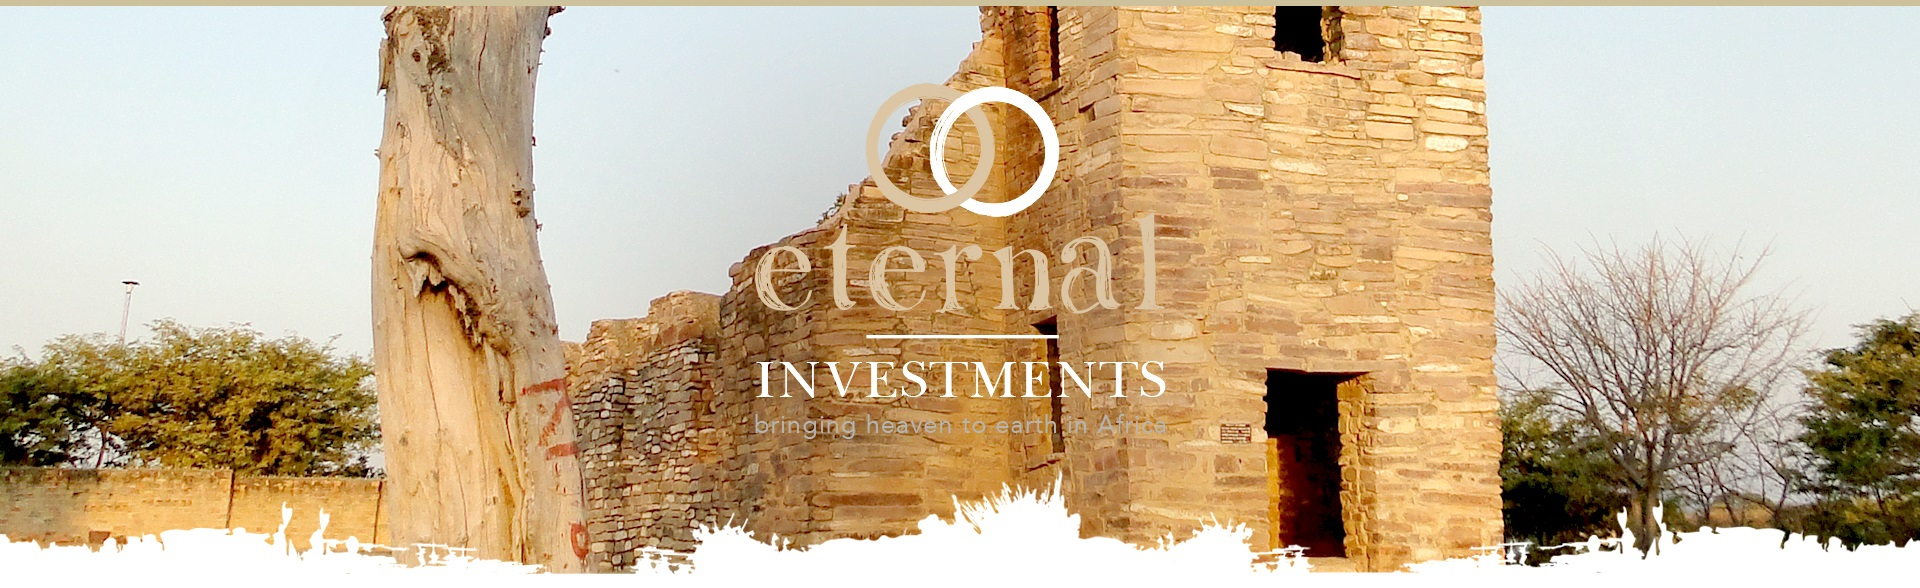 eternal-investment-our-mission-banner.jpg